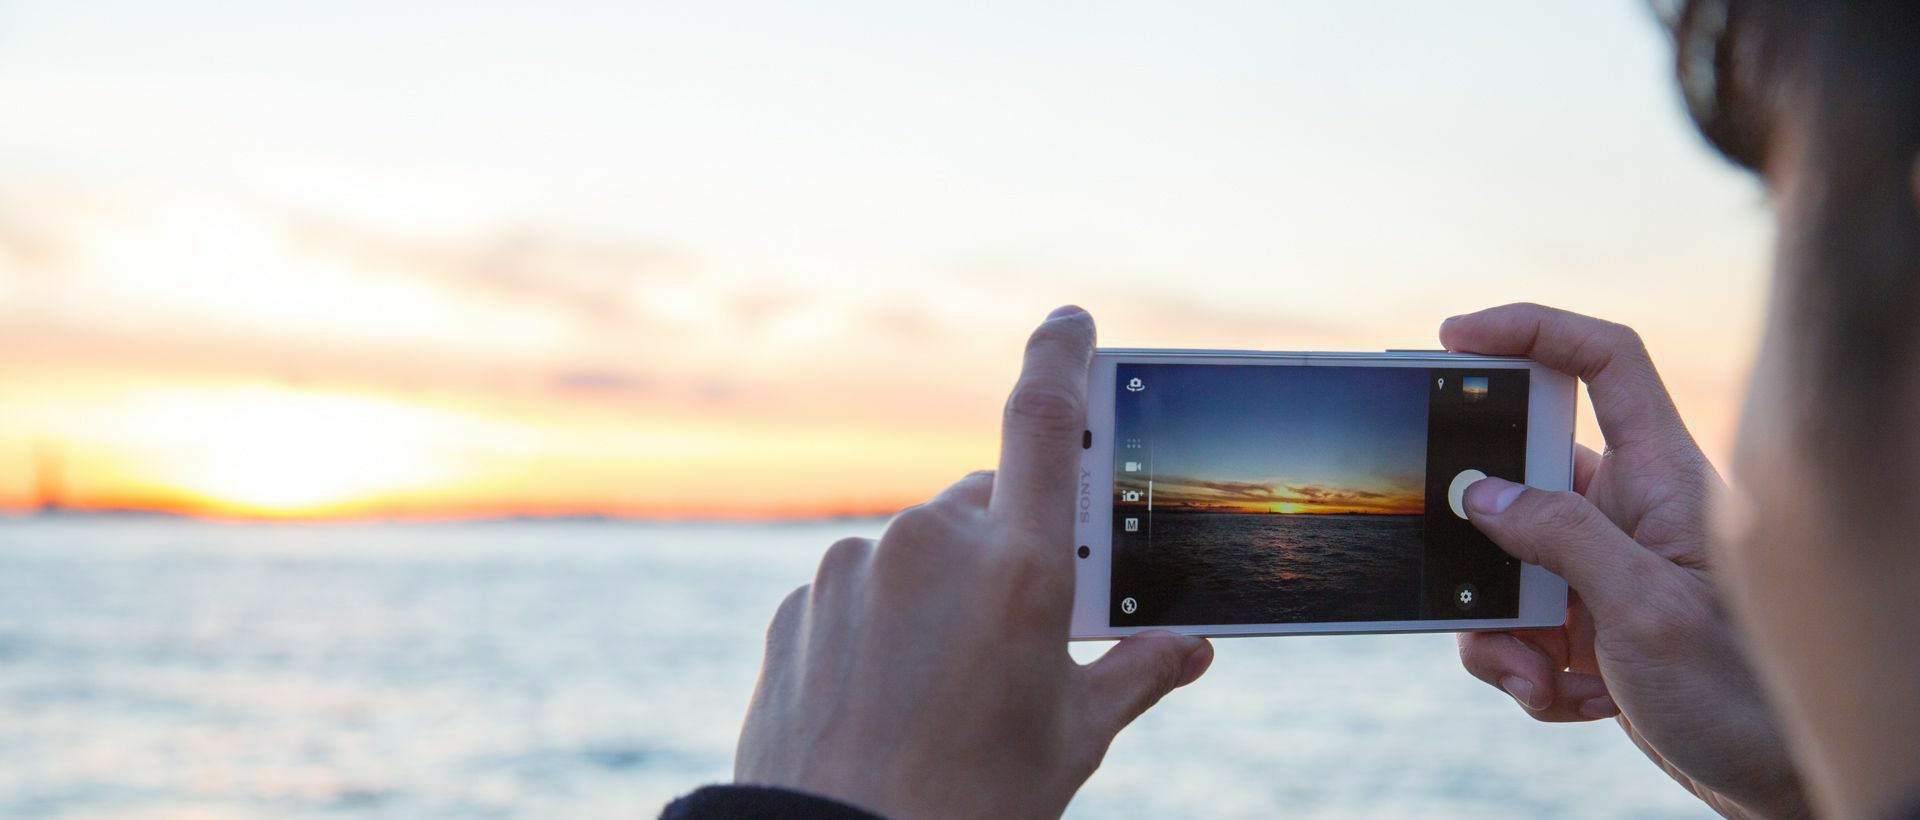 5 summer photography tips for your smartphone.